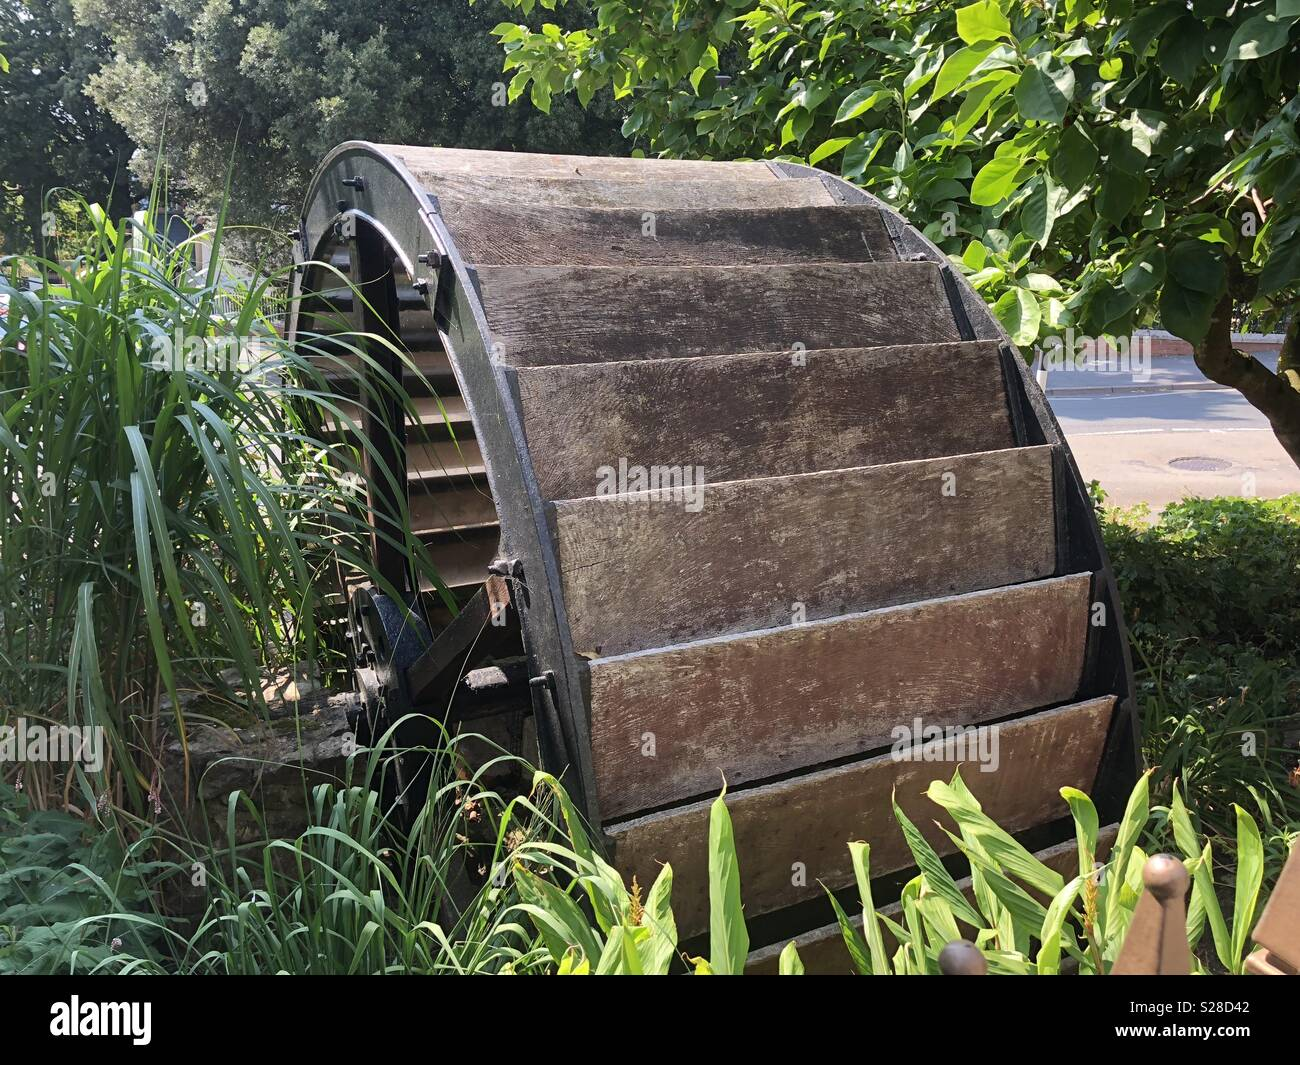 A rather striking water wheel, steeped in greenery, but alas no longer any water, but l contend quite beautiful an a natural treasure. Stock Photo